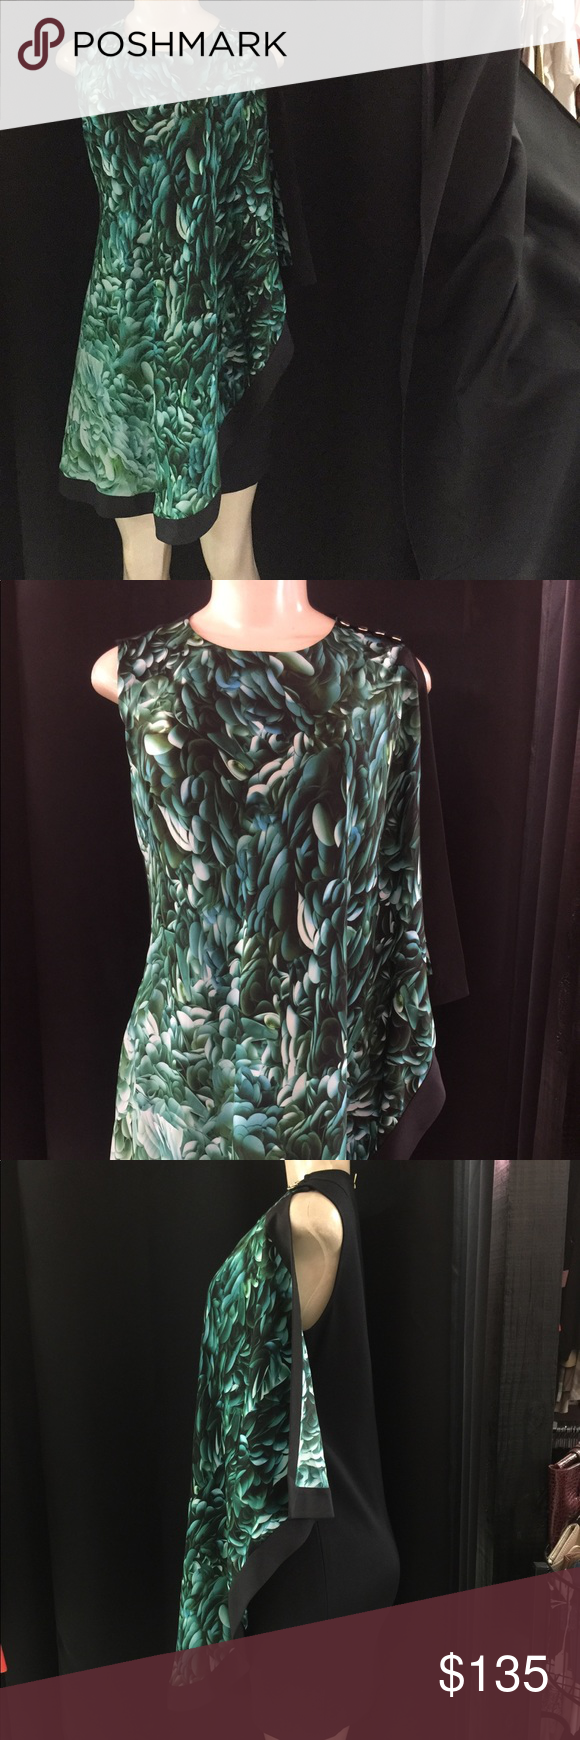 25db427e30ae7 Ted Baker Dress Designer Ted Baker dress Size 2 Colors are black green and  blues 4 Gold buttons at the top of Dress absolutely gorgeous dress Condition  Like ...